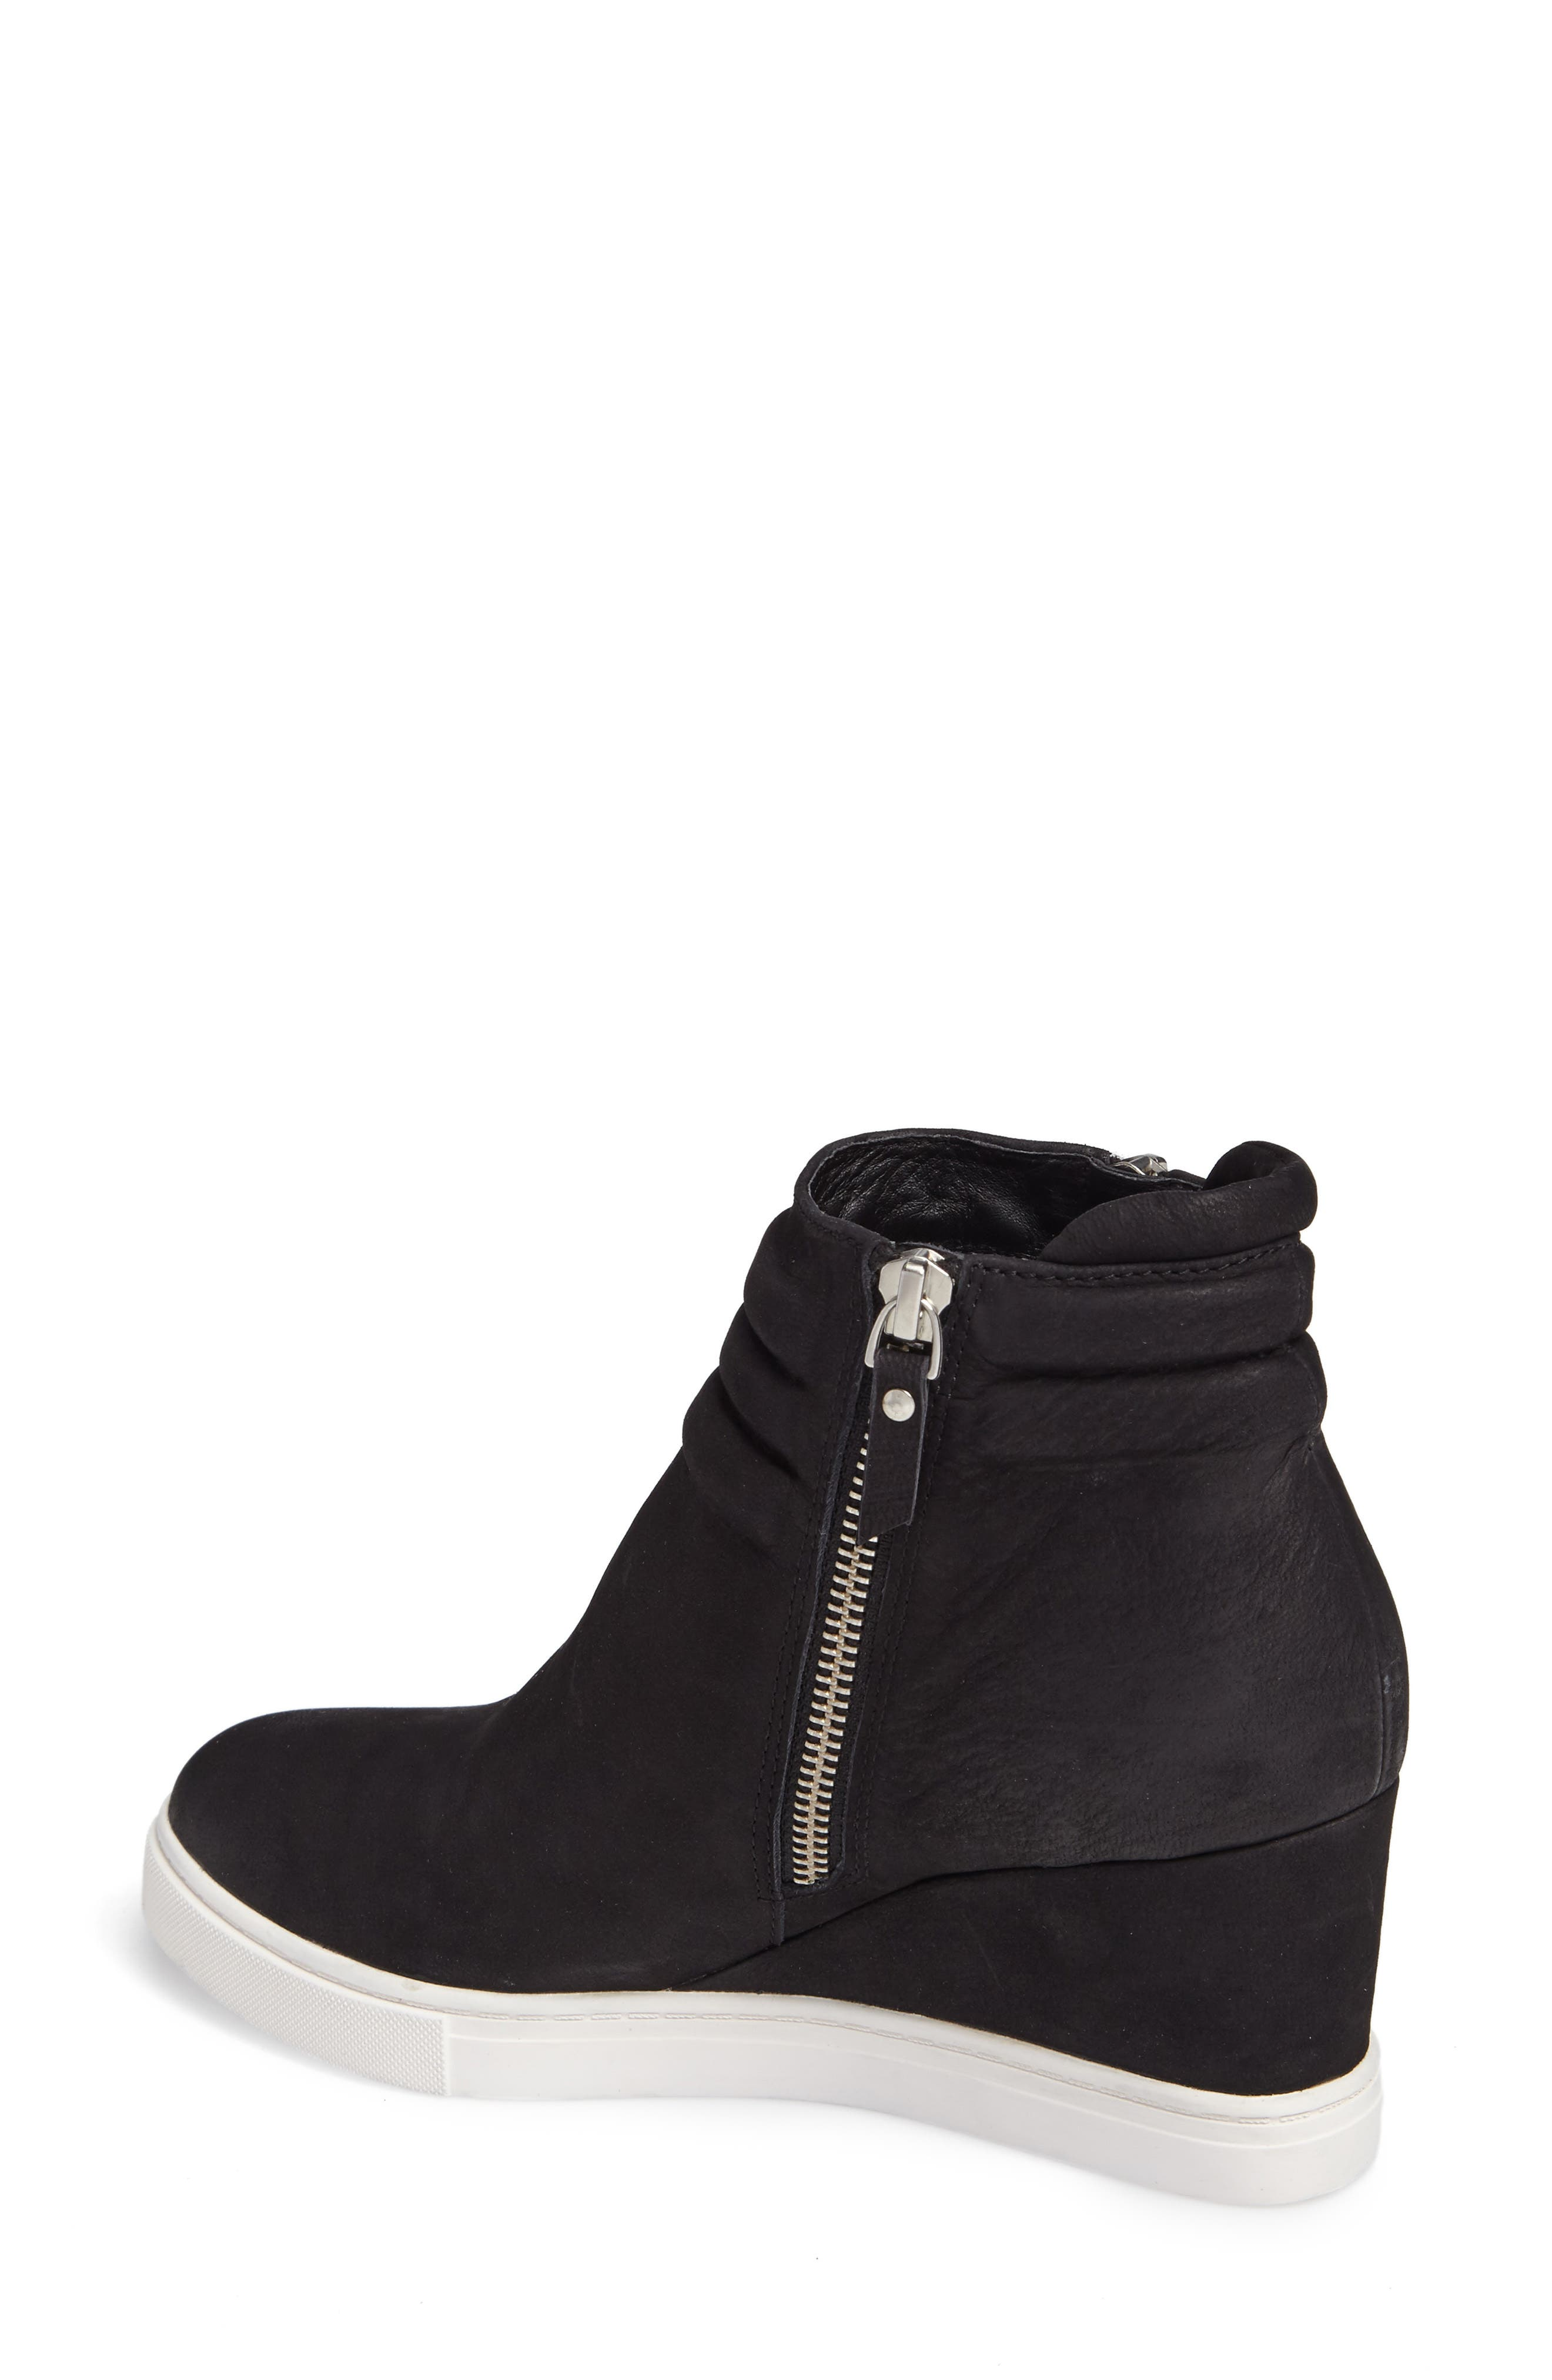 Frieda Wedge Bootie,                             Alternate thumbnail 2, color,                             BLACK LEATHER